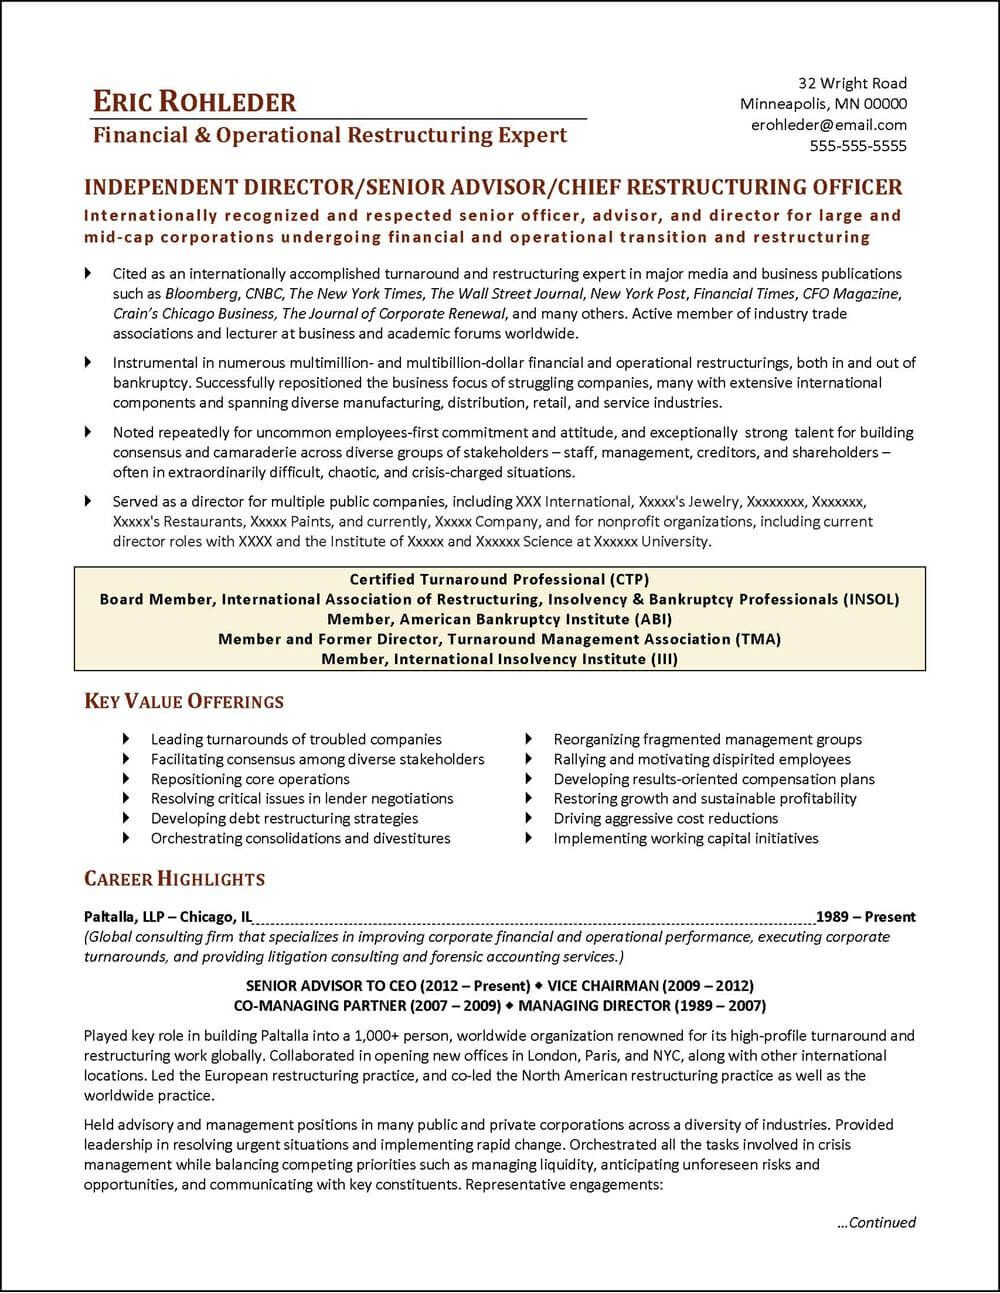 An executive resume written for a Chief Restructuring